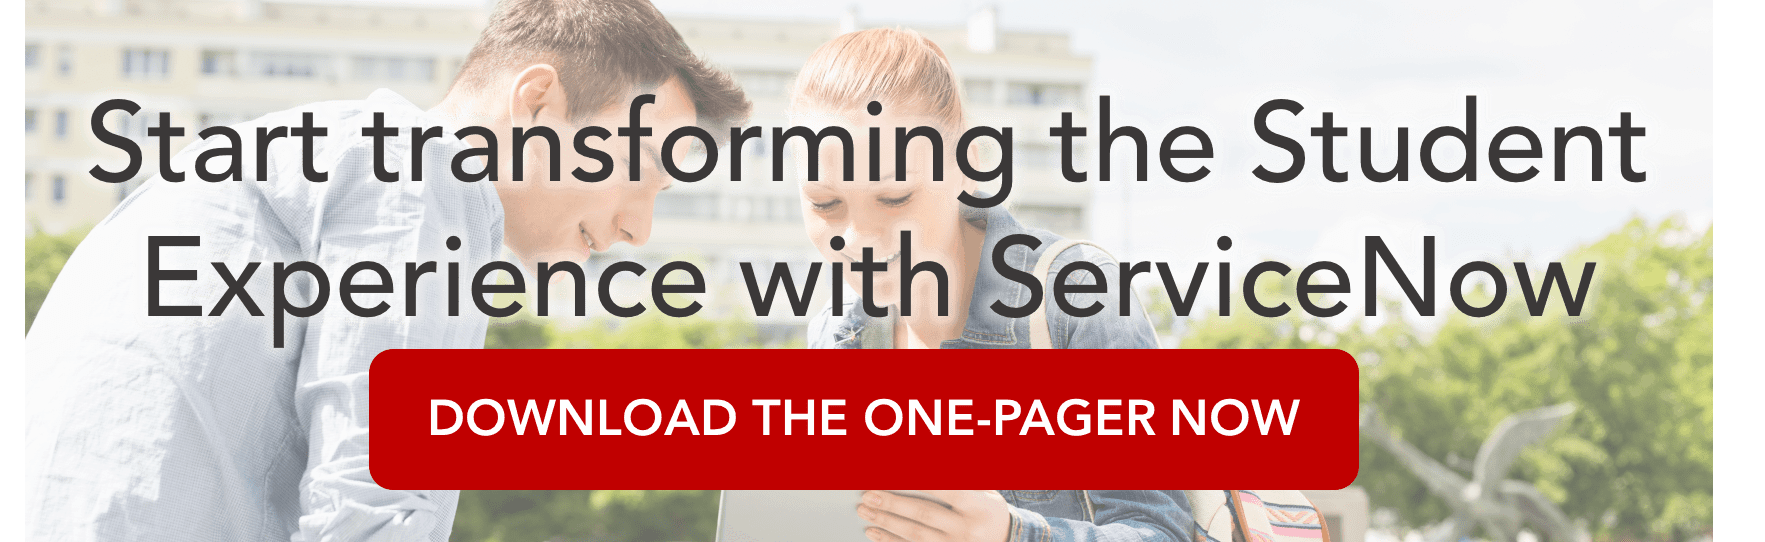 Redefine the Student Experience with ServiceNow   Acorio